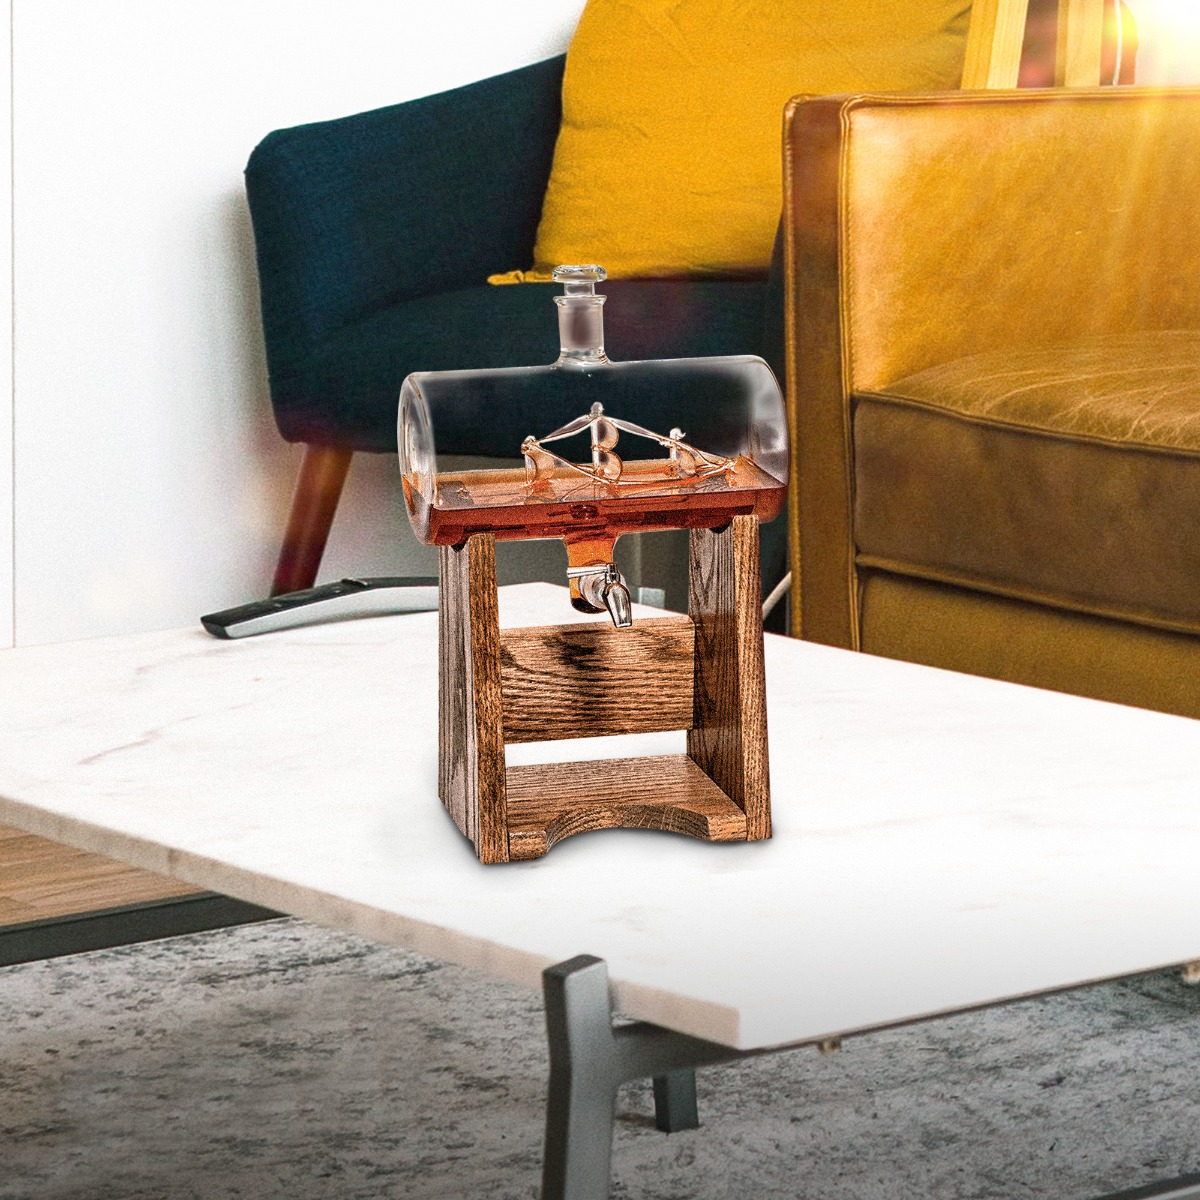 Lifestyle Image of Constellation 1797 Decanter